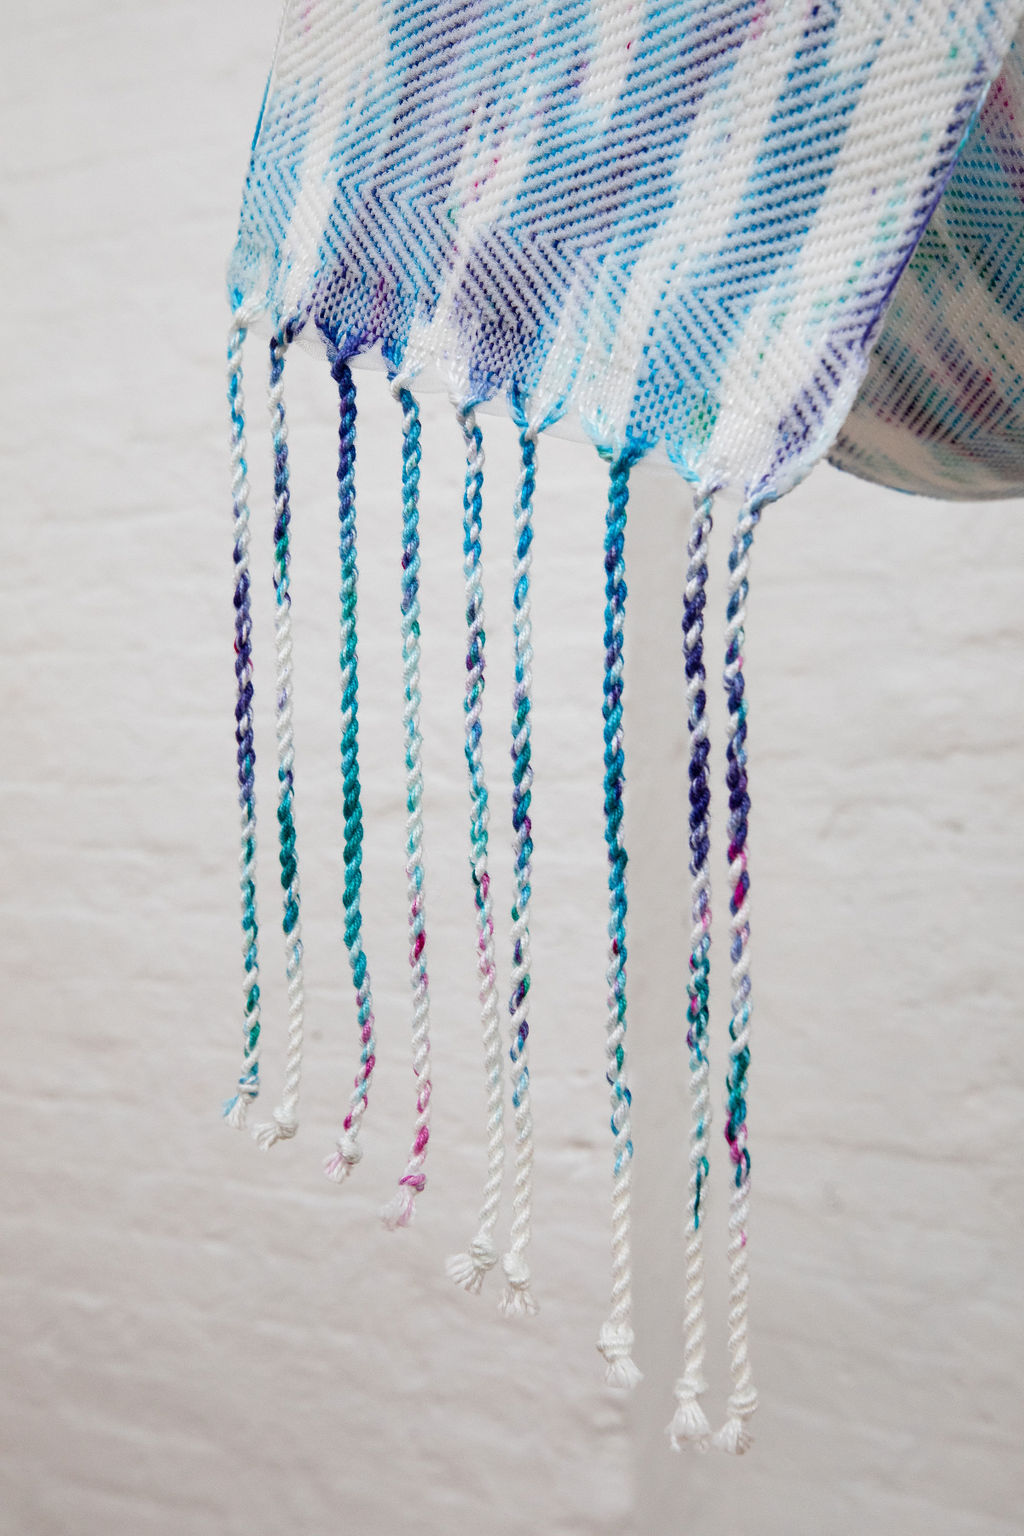 A long, thin hanging draped and suspended in the air is splattered with red, blue, purple and green dye and woven in a semi-transparent zig-zag design.